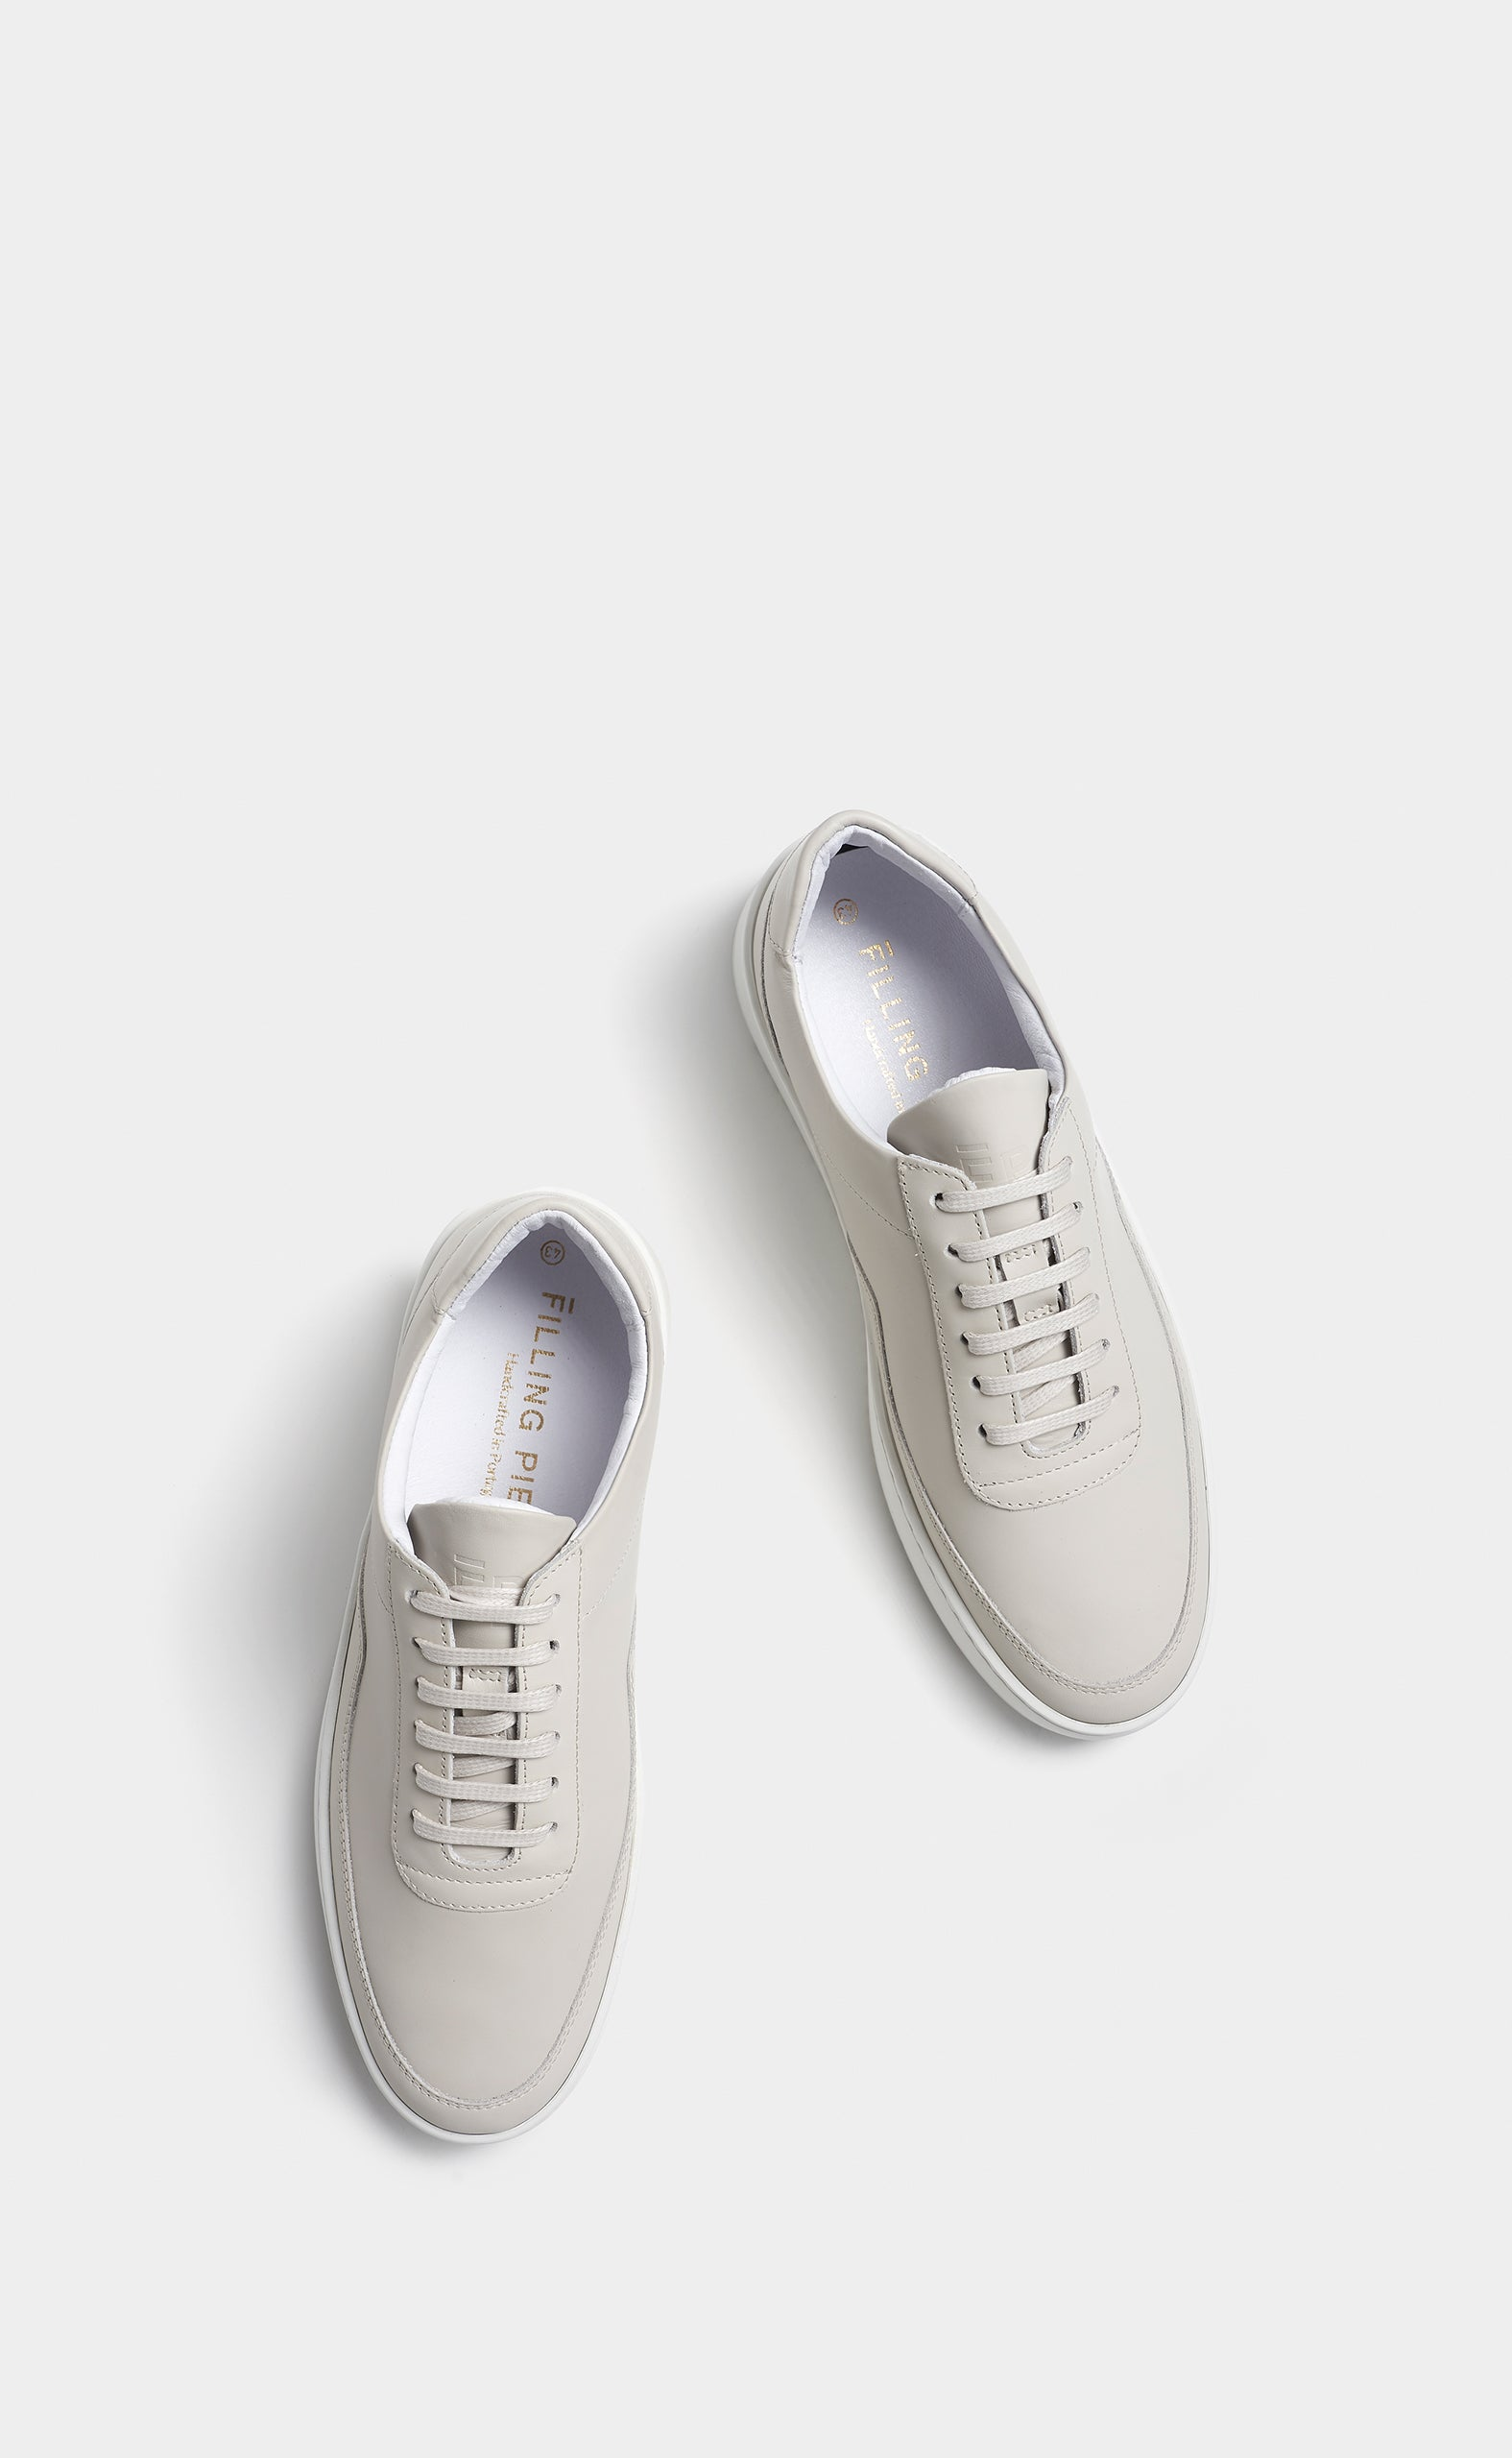 Low Mondo Ripple Matt Nappa Off White